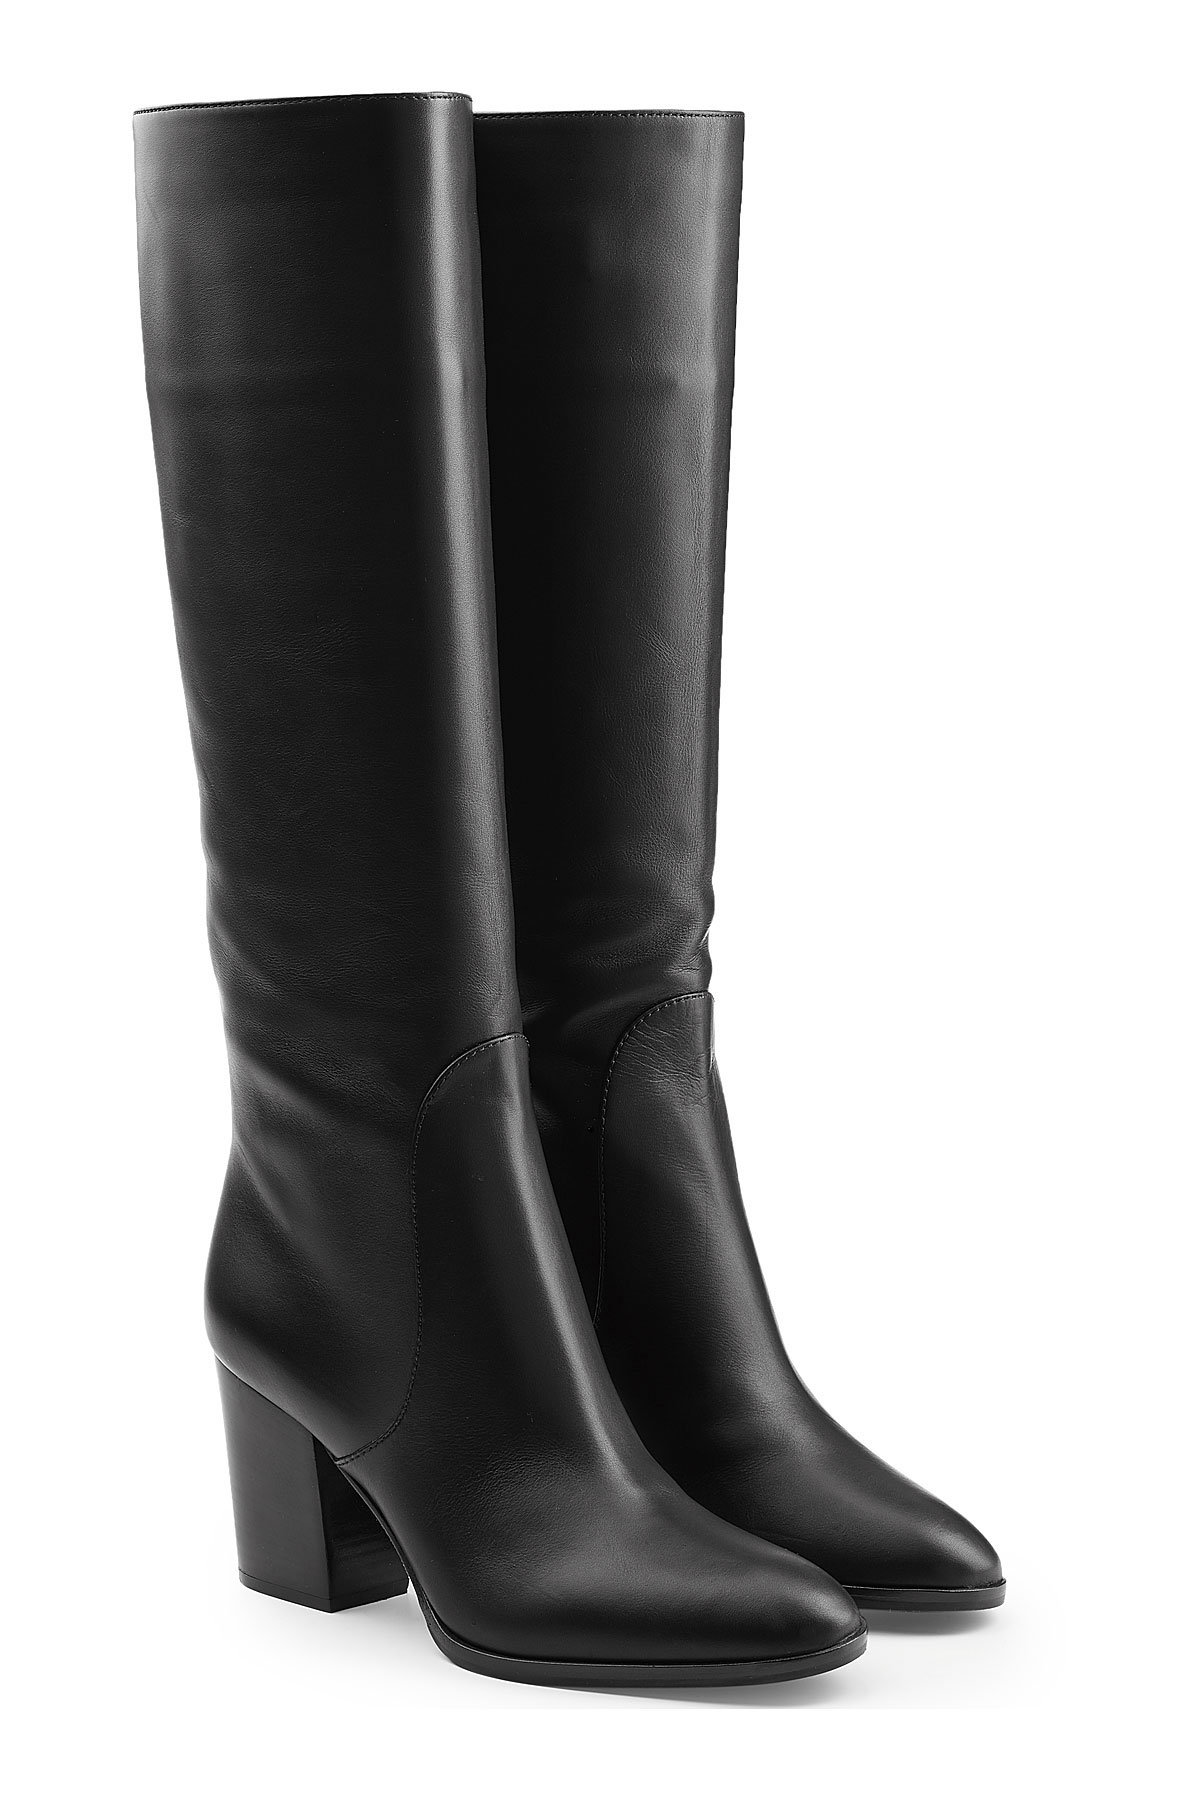 Jil Sander Leather Knee Boots Gr. IT 38 qsjPROA5t